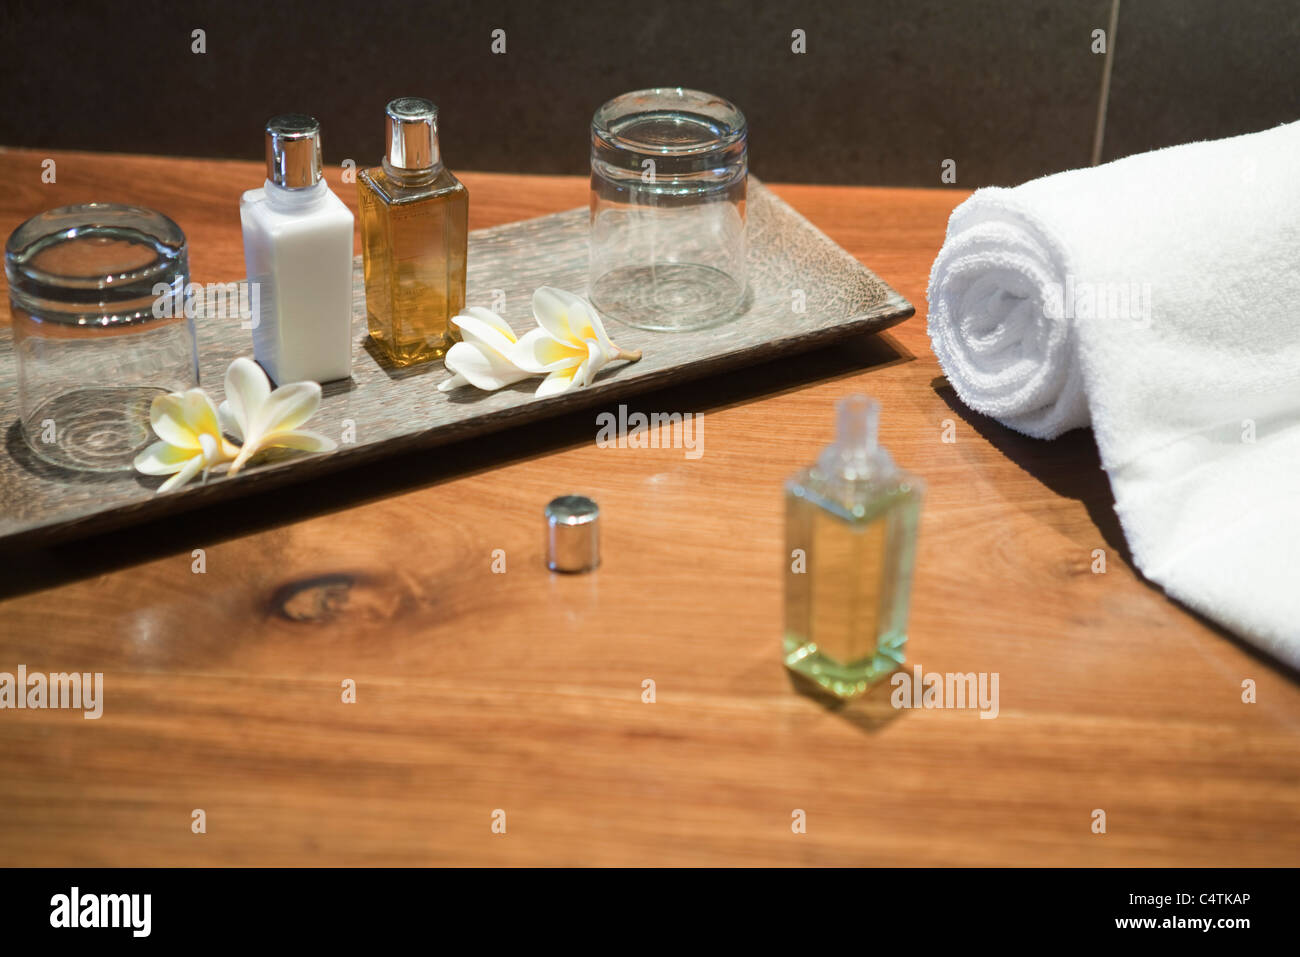 Perfume bottles and frangipani flowers on tray - Stock Image